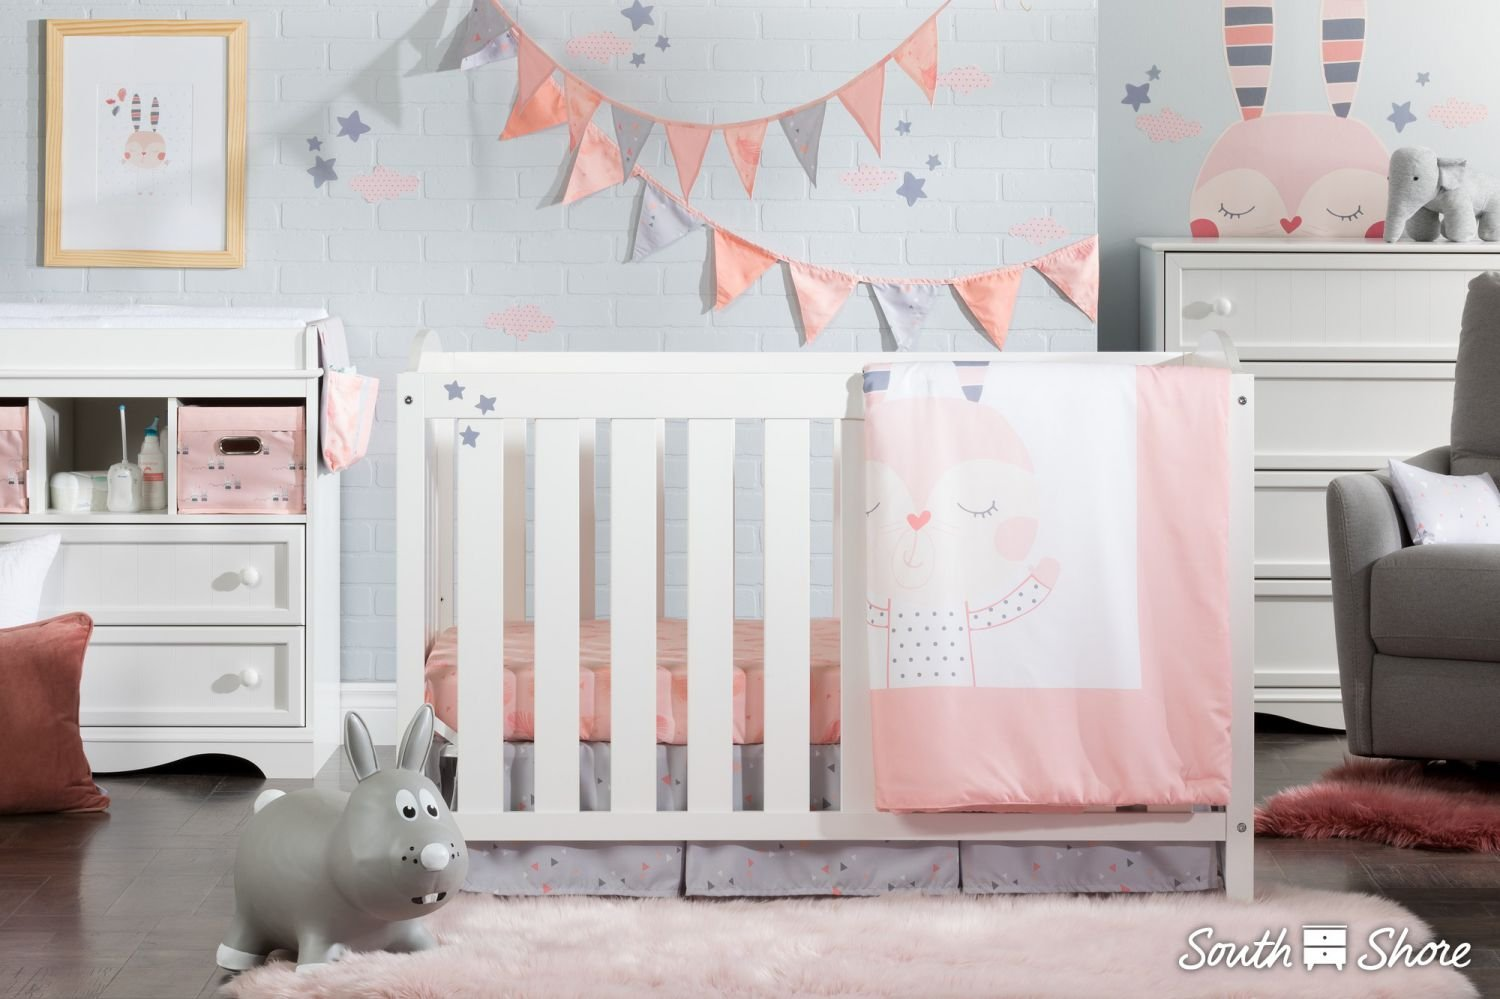 South Shore Doudou The Rabbit 3-Piece Baby Crib Bed Set and Pillow, Pink by South Shore (Image #4)